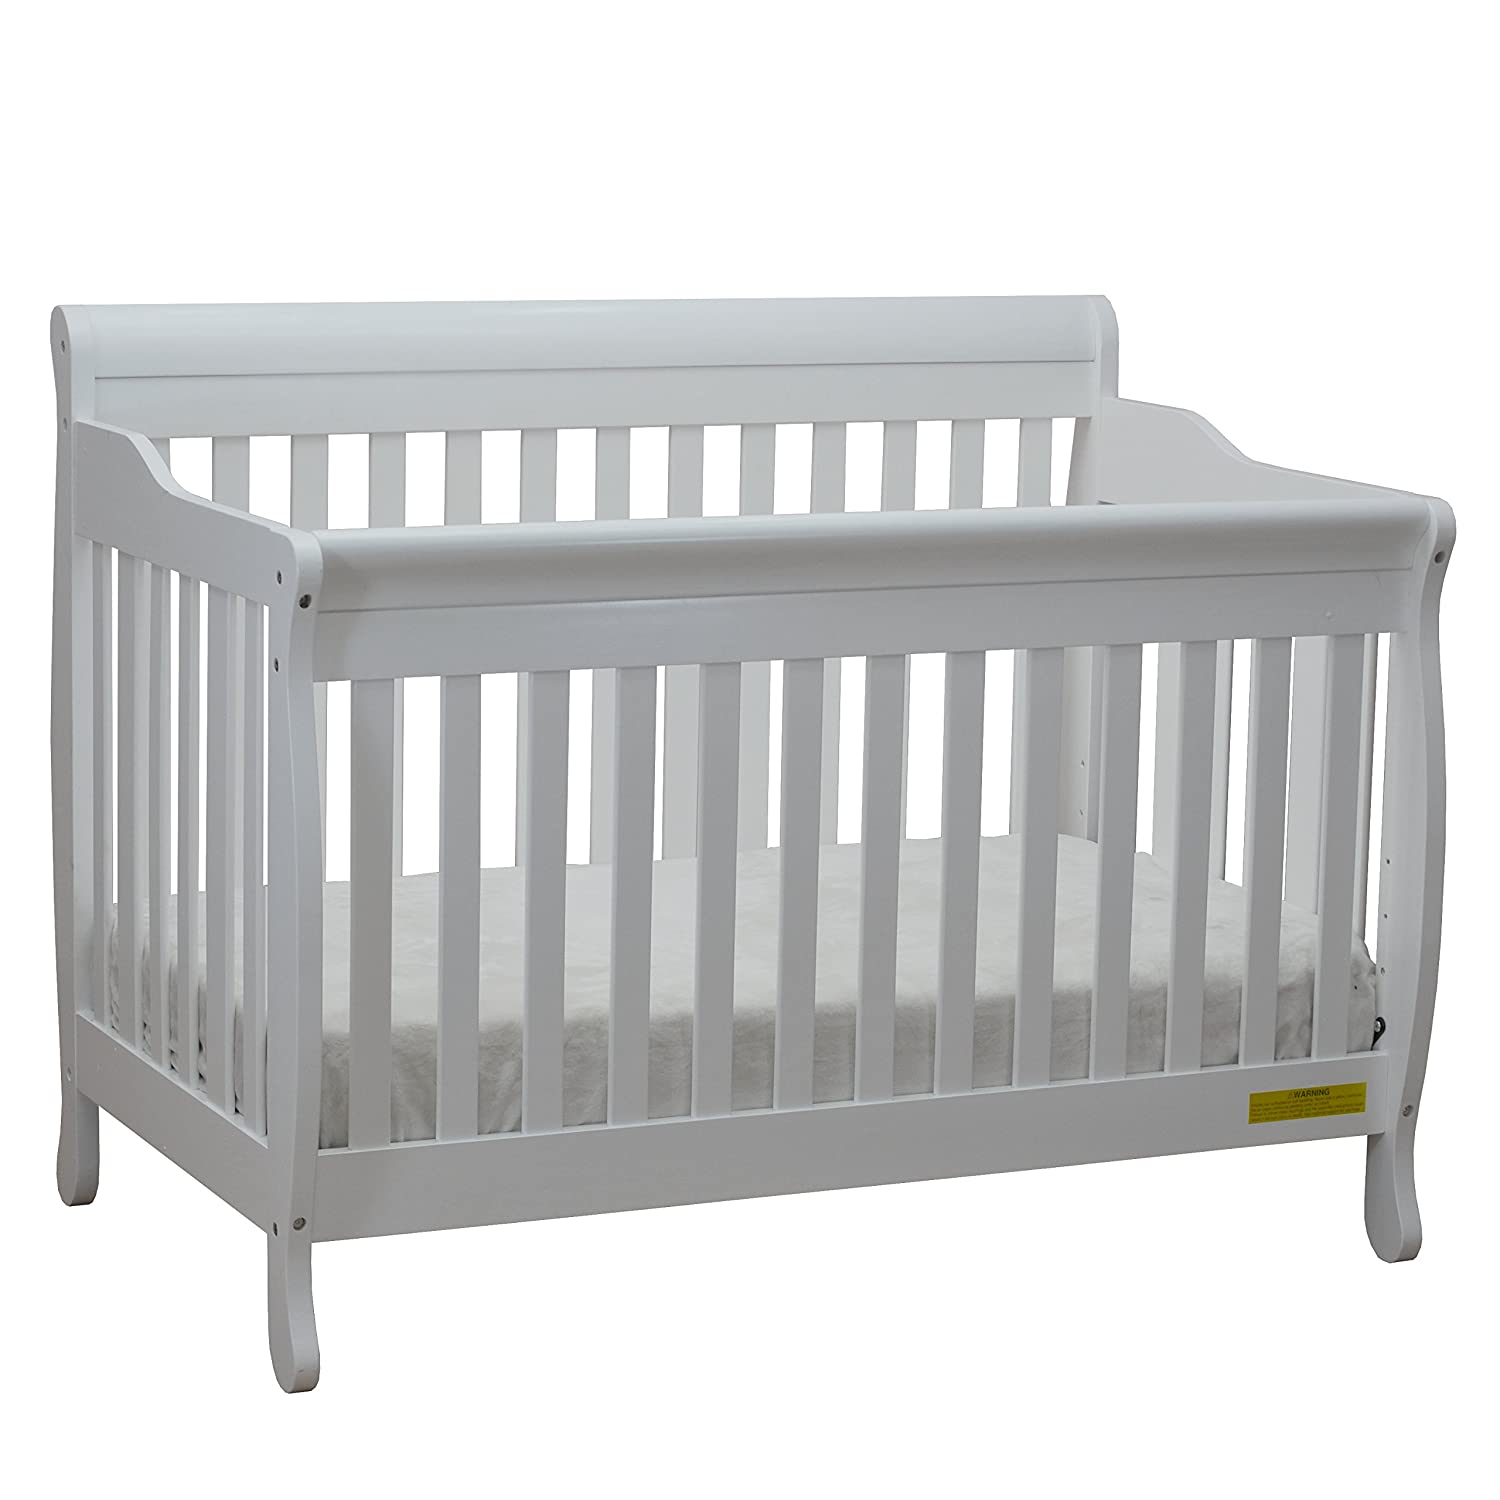 Athena Alice 4 in 1 Crib with Toddler Rail, White